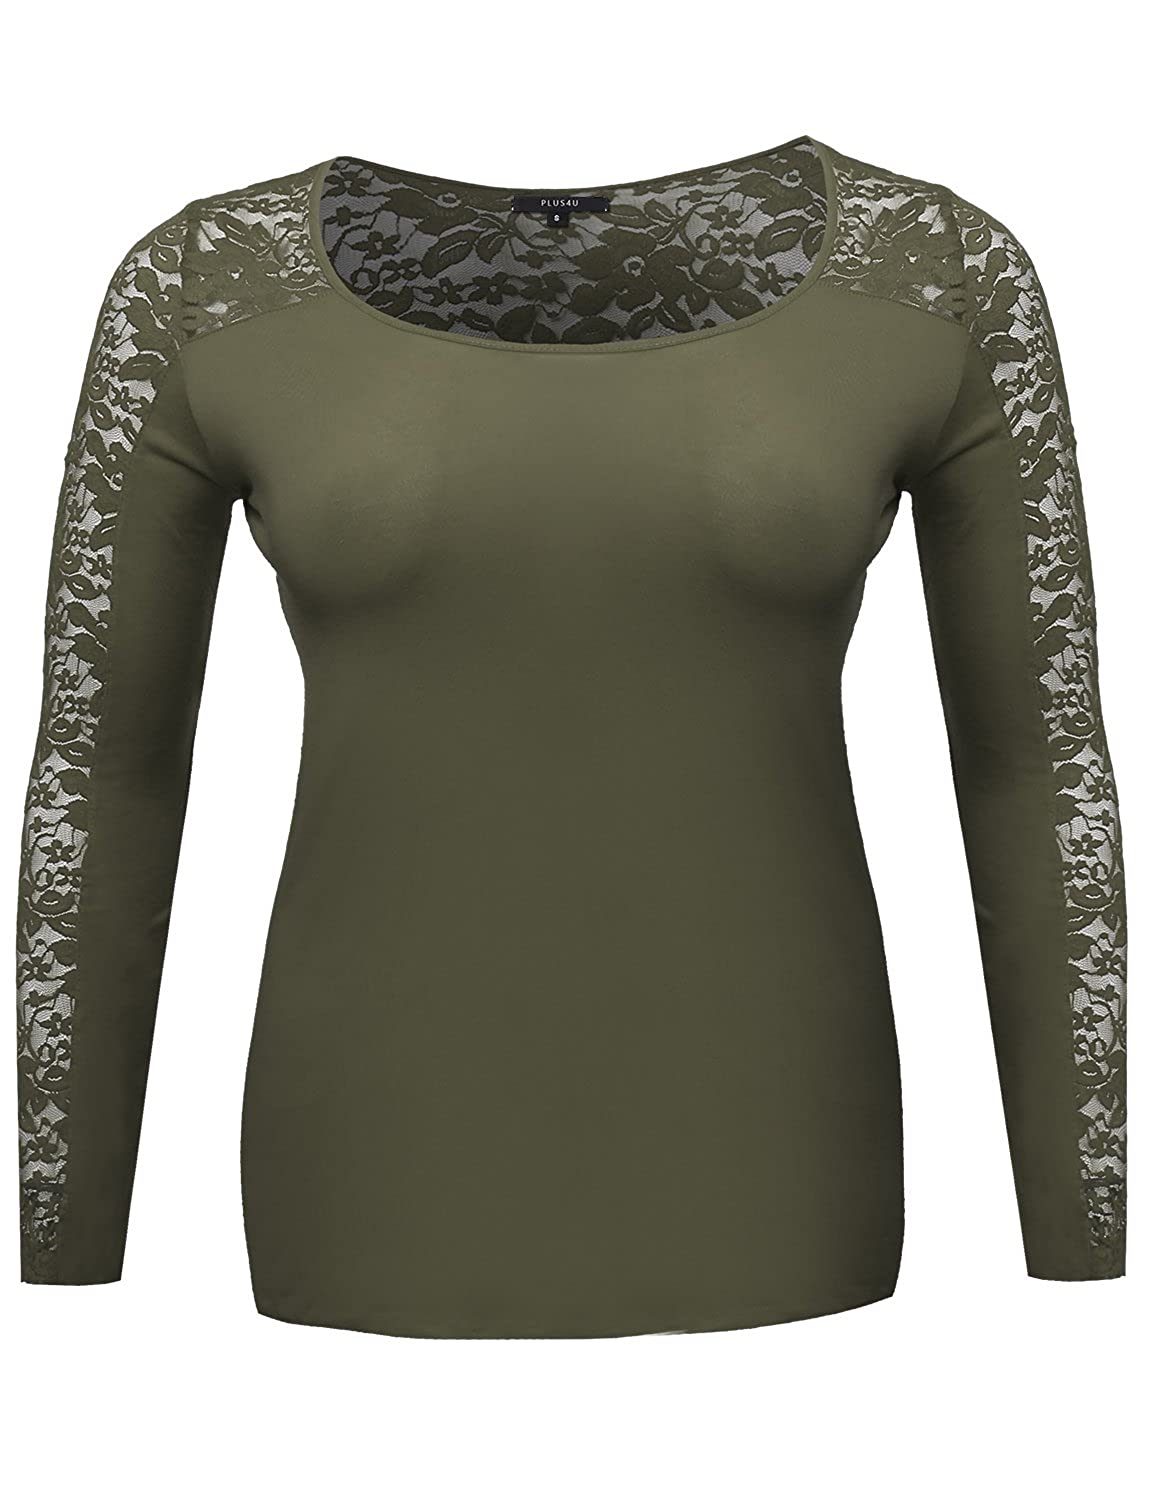 Plus4u Women's Long Sleeve Round Scoop Neck Lace Top